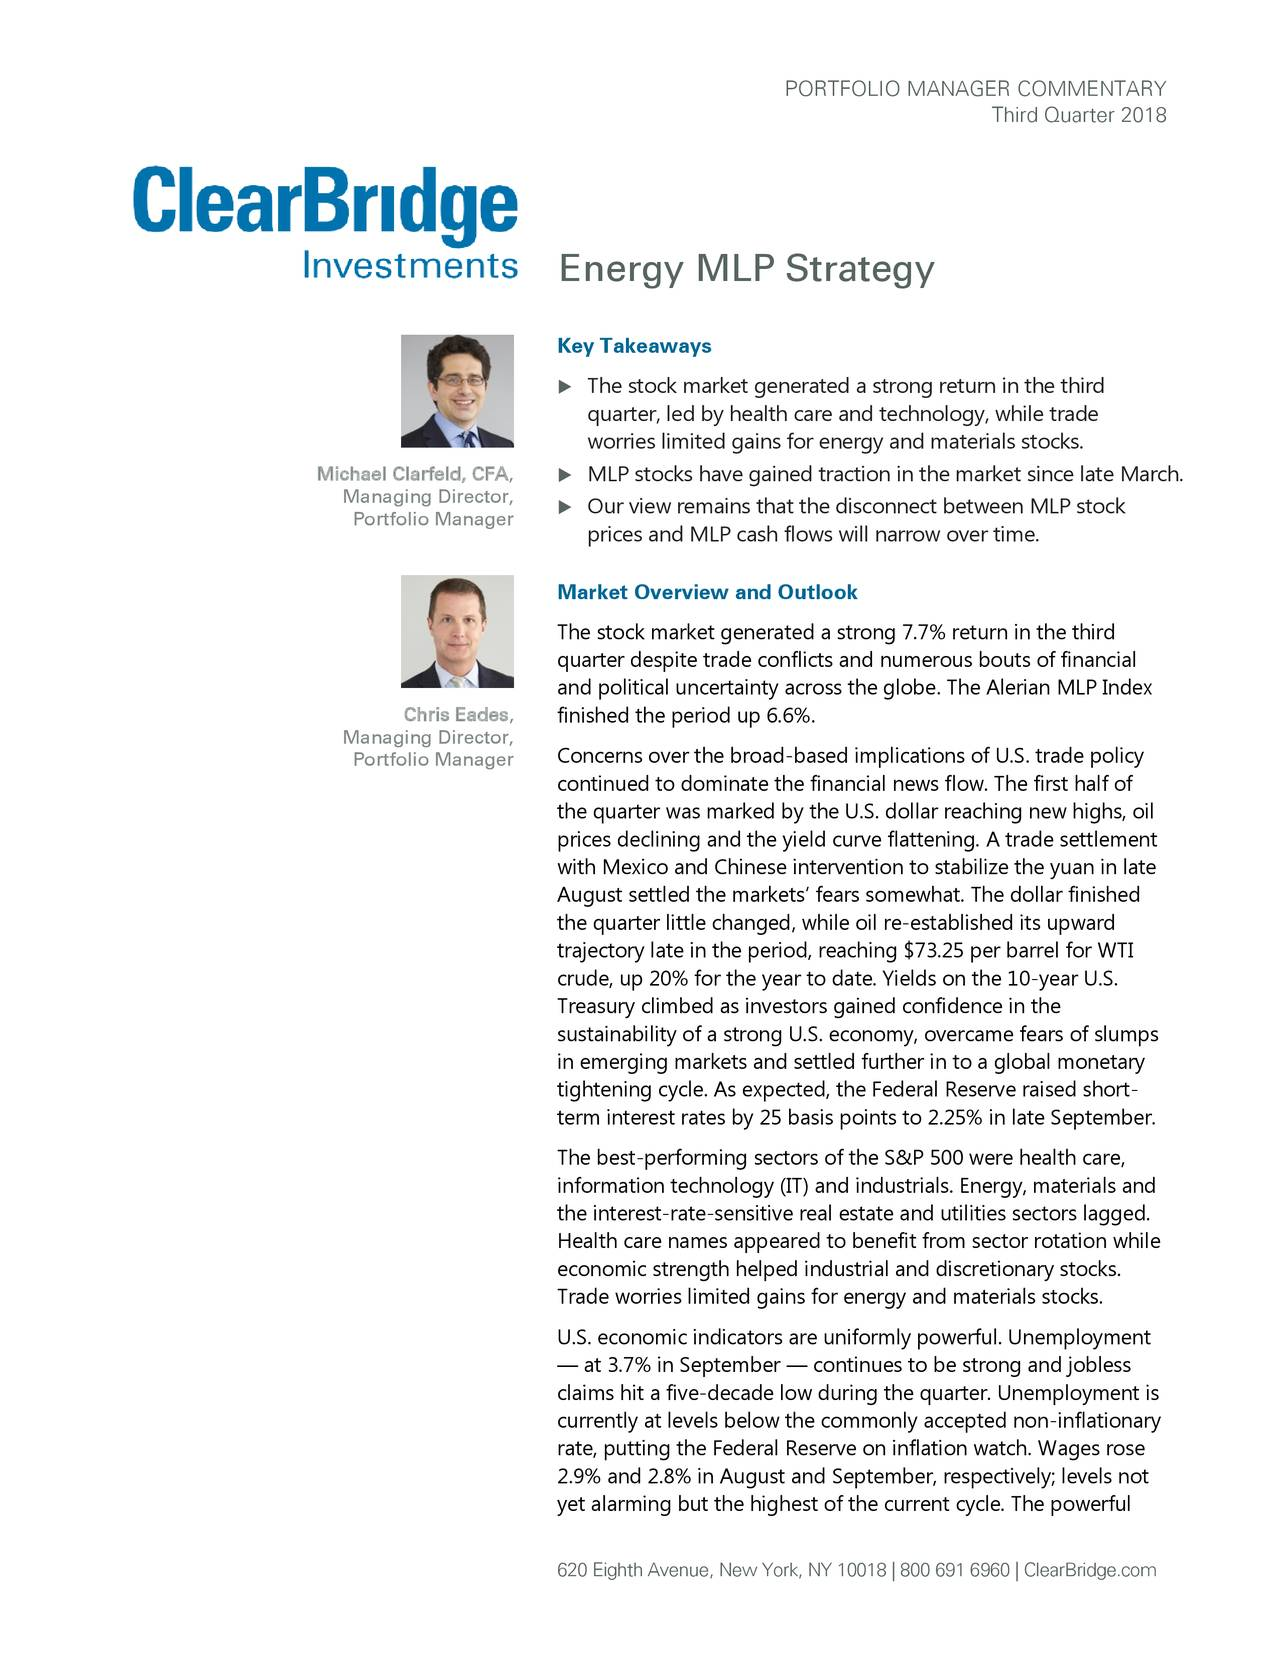 Third Quarter 2018 Energy MLP Strategy Key Takeaways  The stock market generated a strong return in the third quarter, led by health care and technology, while trade worries limited gains for energy and materials stocks. Michael Clarfeld, CFA,  MLP stocks have gained traction in the market since late March . Managing Director, Portfolio Manager  Our view remains that the disconnect between MLP stock prices and MLP cash flows will narrow over time . Market Overview and Outlook The stock market generated a strong 7.7% return in the third quarter despite trade conflicts and numerous bouts of financial and political uncertainty across the globe. The Alerian MLP Index Chris Eades, finished the period up 6.6%. Managing Director, Portfolio Manager Concerns over the broad-based implications of U.S. trade policy continued to dominate the financial news flow. The first half of the quarter was marked by the U.S. dollar reaching new highs, oil prices declining and the yield curve flattening. A trade settlement with Mexico and Chinese intervention to stabilize the yuan in late August settled the markets' fears somewhat. The dollar finished the quarter little changed, while oil re-established its upward trajectory late in the period, reaching $73.25 per barrel for WTI crude, up 20% for the year to date. Yields on the 10-year U.S. Treasury climbed as investors gained confidence in the sustainability of a strong U.S. economy, overcame fears of slumps in emerging markets and settled further in to a global monetary tightening cycle. As expected, the Federal Reserve raised short- term interest rates by 25 basis points to 2.25% in late September. The best-performing sectors of the S&P 500 were health care, information technology (IT) and industrials. Energy, materials and the interest-rate-sensitive real estate and utilities sectors lagged. Health care names appeared to benefit from sector rotation while economic strength helped industrial and discretionary stocks. Trade worries limited gains for energy and materials stocks. U.S. economic indicators are uniformly powerful. Unemployment — at 3.7% in September — continues to be strong and jobless claims hit a five-decade low during the quarter. Unemployment is currently at levels below the commonly accepted non-inflationary rate, putting the Federal Reserve on inflation watch. Wages rose 2.9% and 2.8% in August and September, respectively; levels not yet alarming but the highest of the current cycle. The powerful 620 Eighth Avenue, New York, NY 10018 | 800 691 6960 | ClearBridge.com